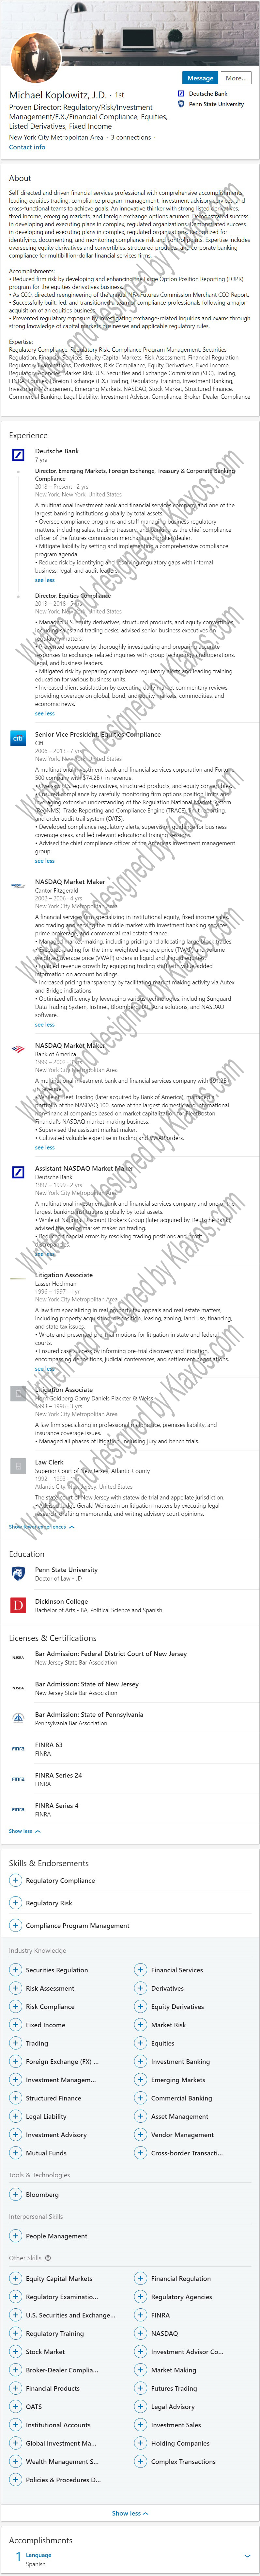 Bank Card Products Linkedin Profile Example